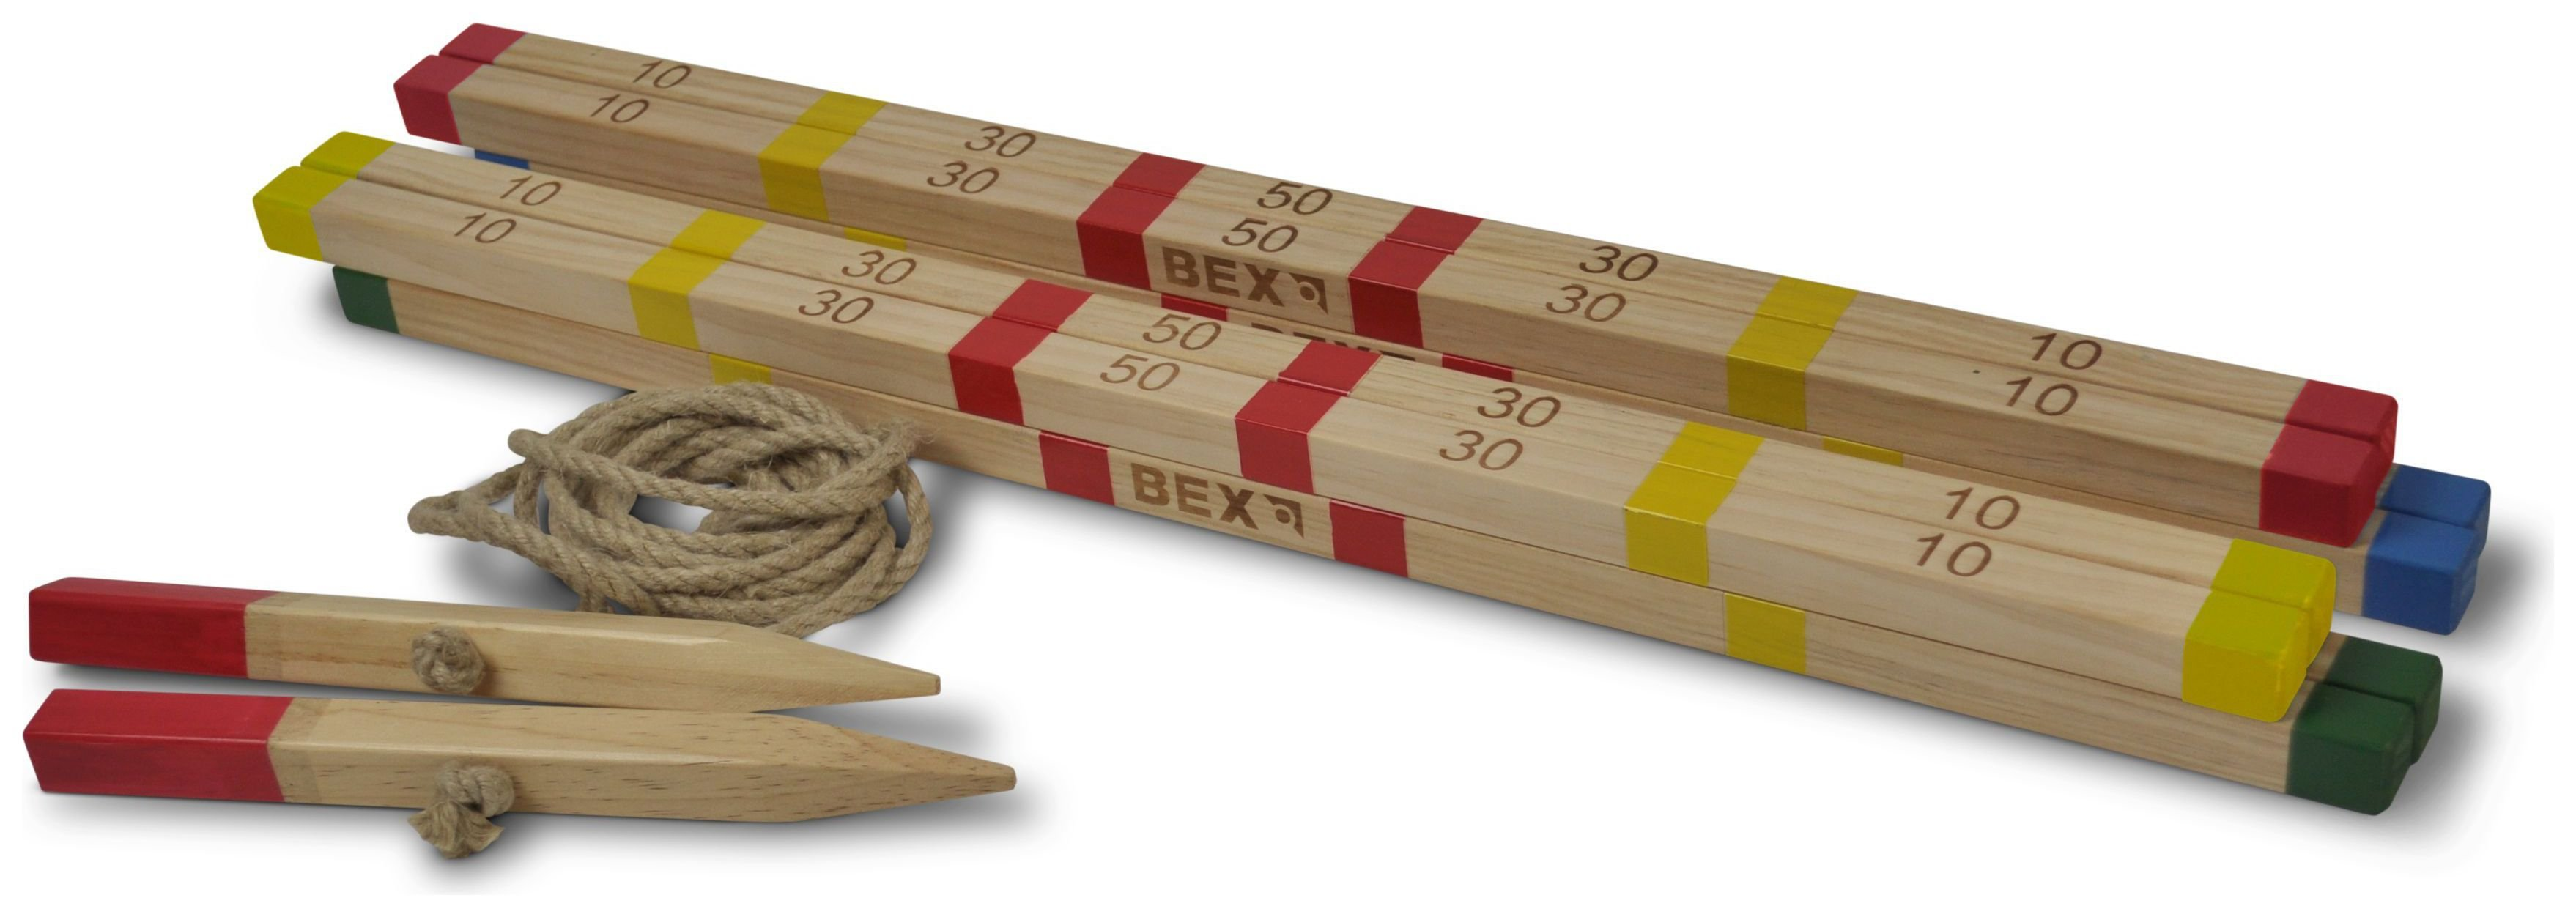 Image of Bex Stick On Line Game.